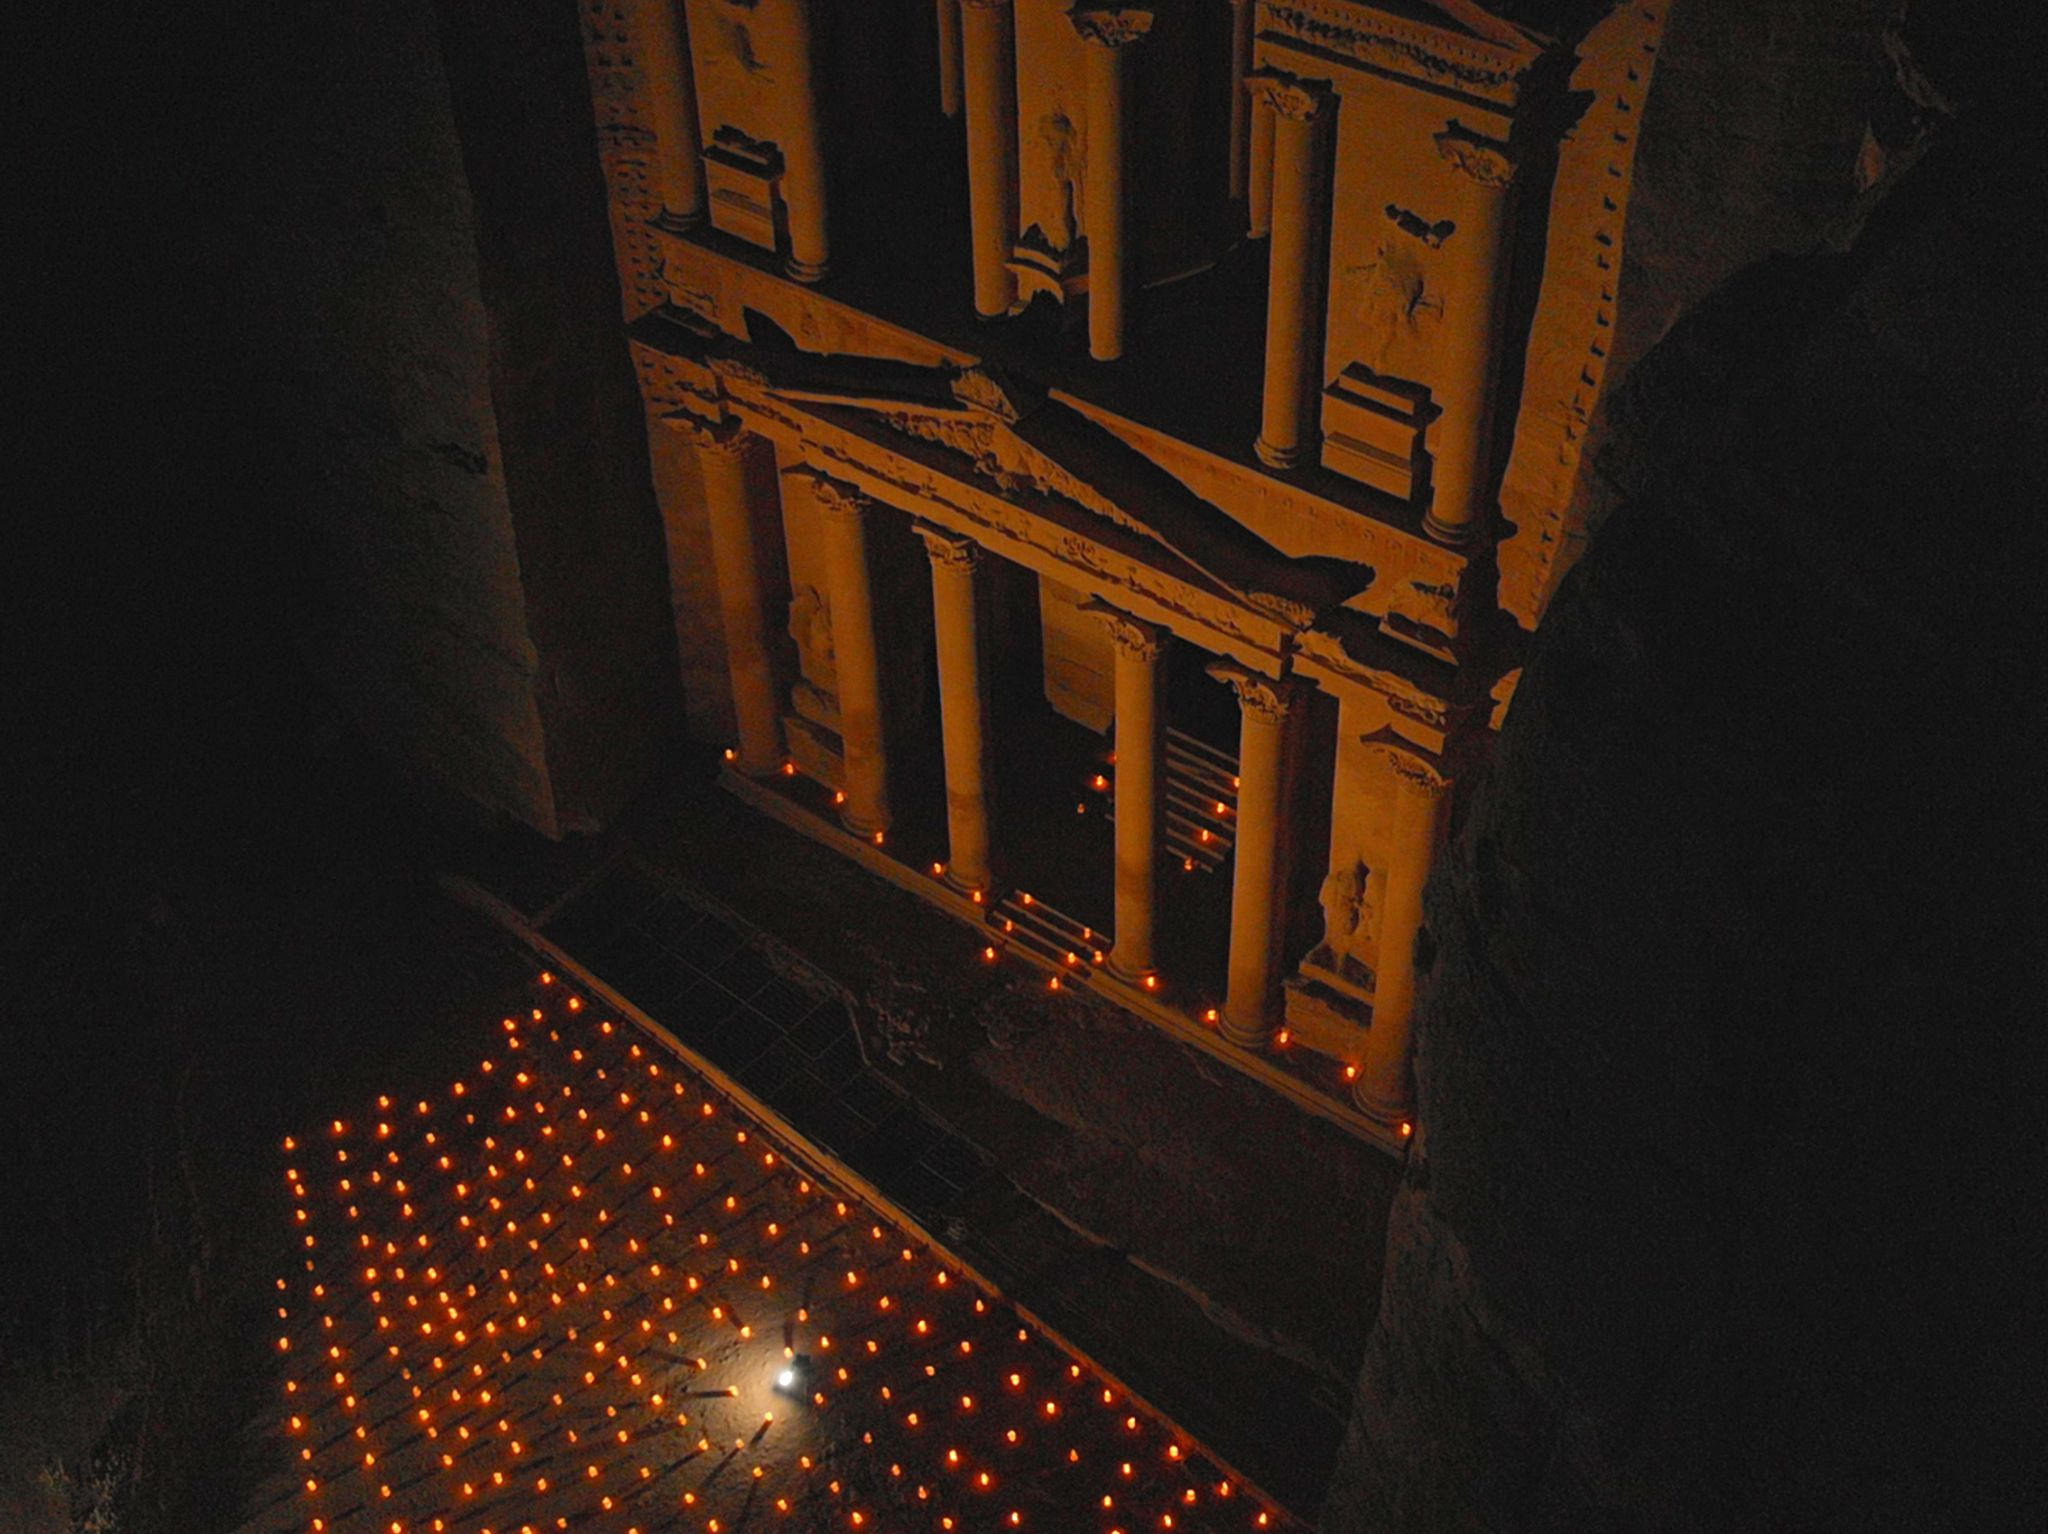 Petra, Jordan:  Petra's Treasury at night.  This image is from Buried Secrets of The Bible with... [Photo of the day - December 2019]